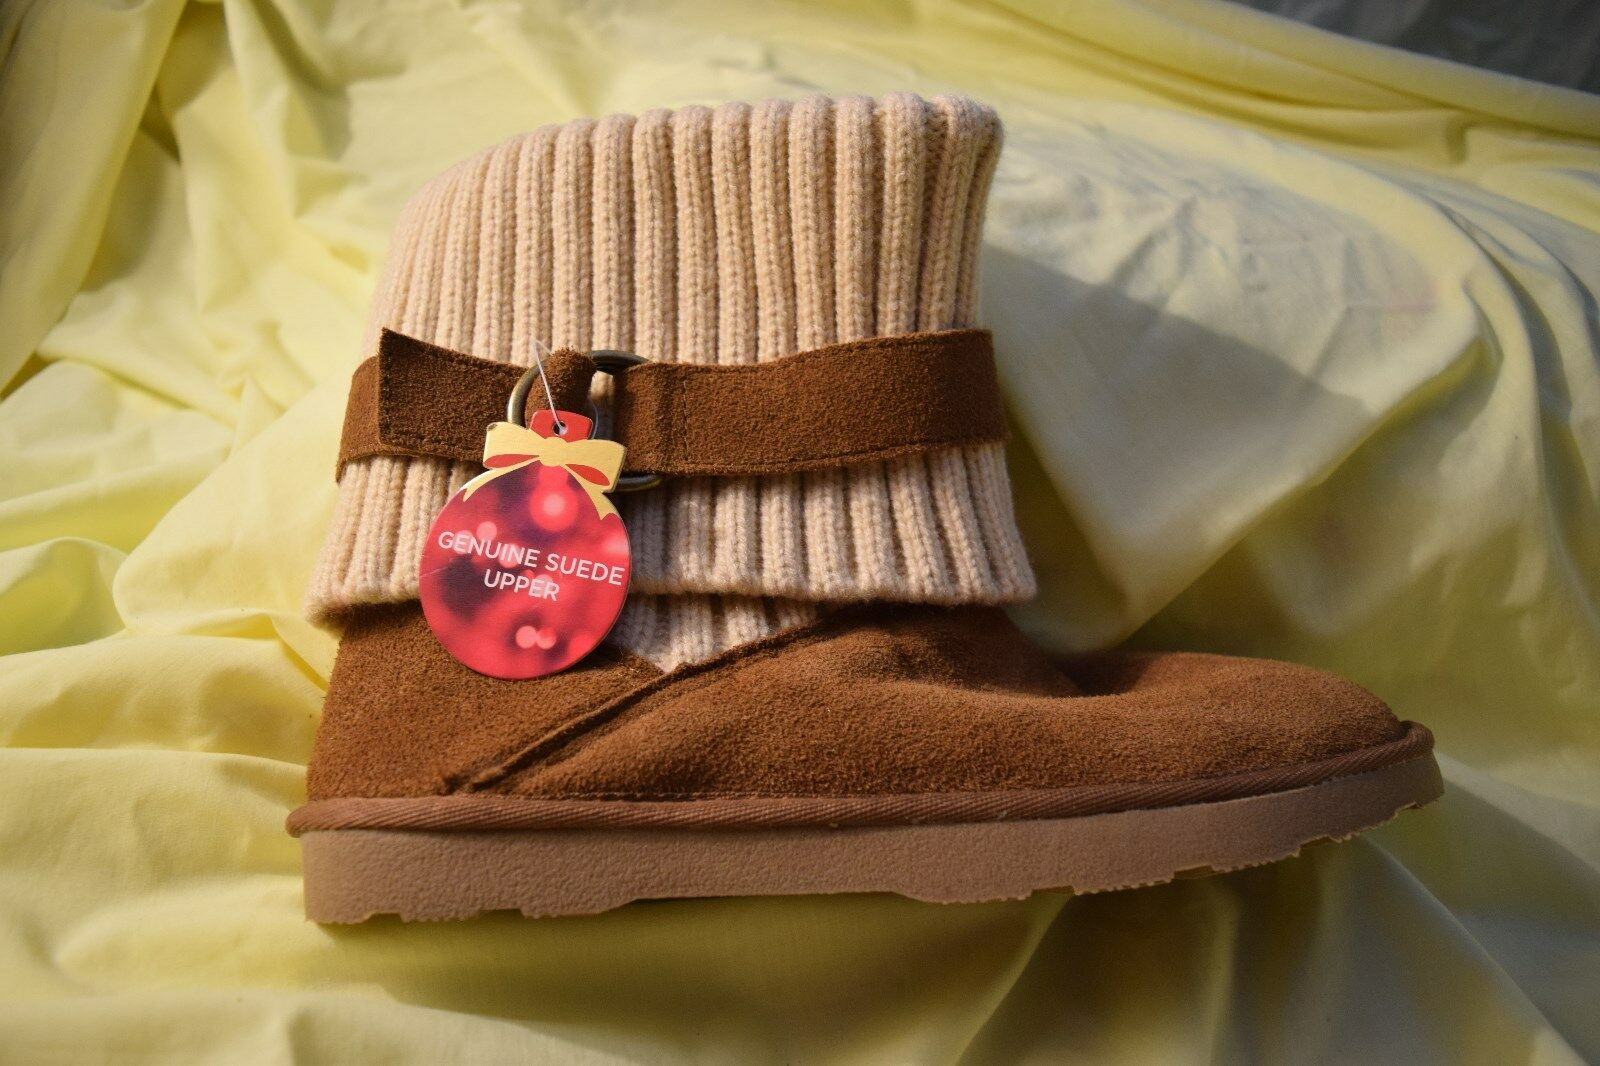 NEW Women's Size 8 Sonoma Mia Brown Genuine Suede Fully Lined Ankle Boot .99